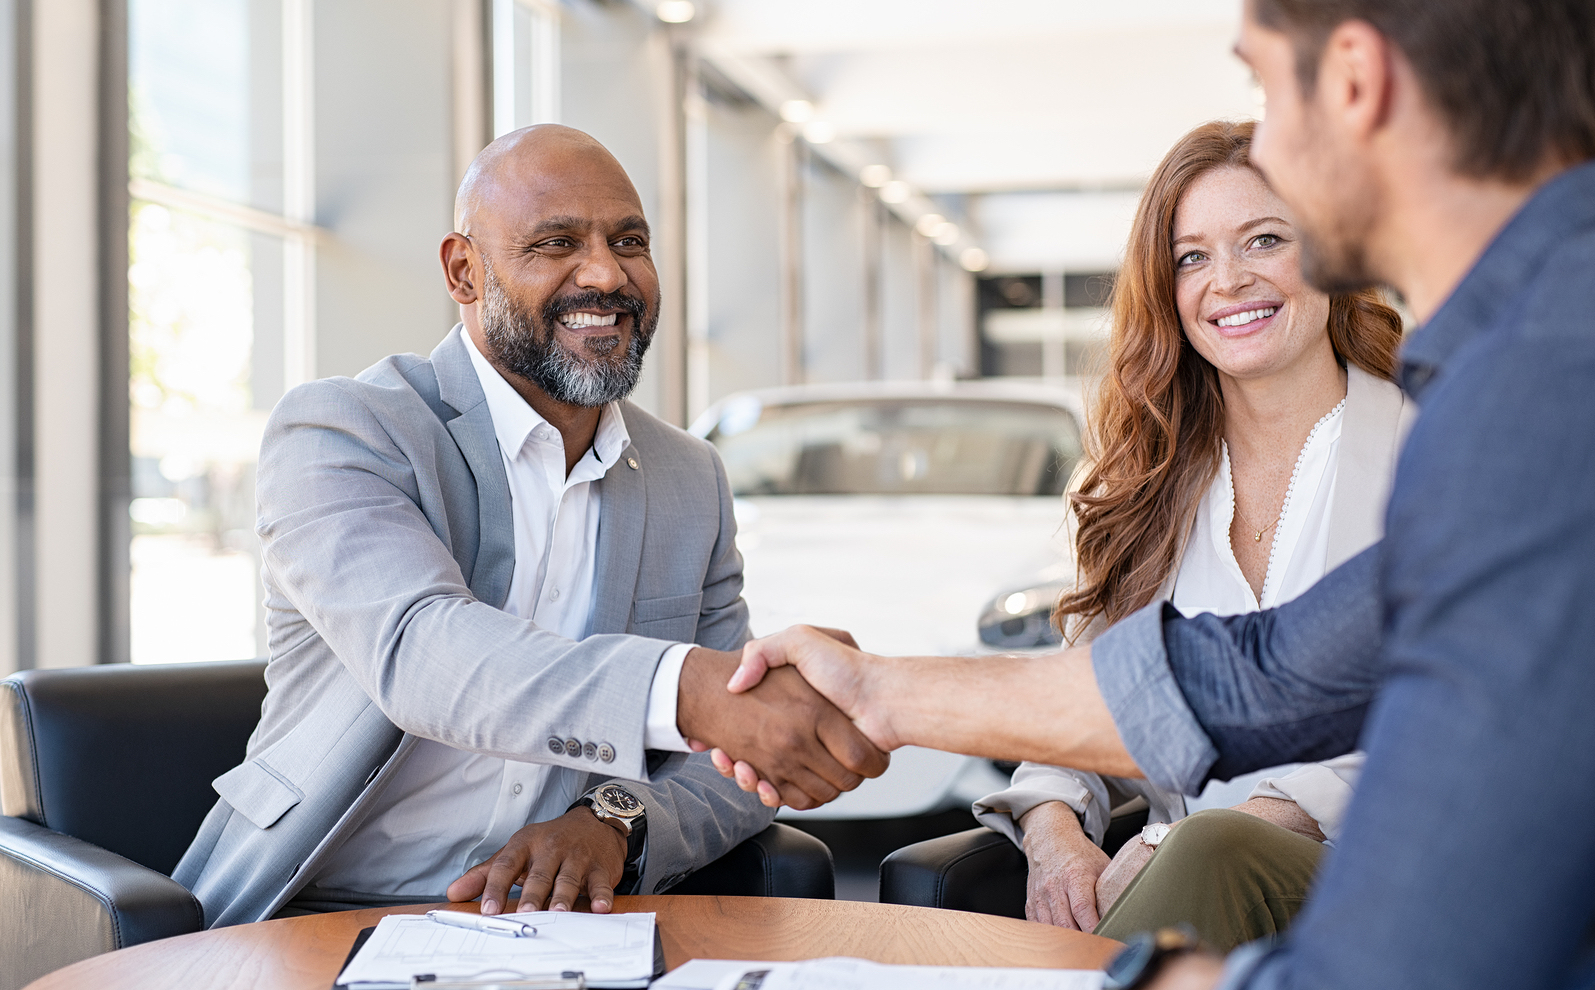 Happy sales advisor shaking hands with man after signing contract